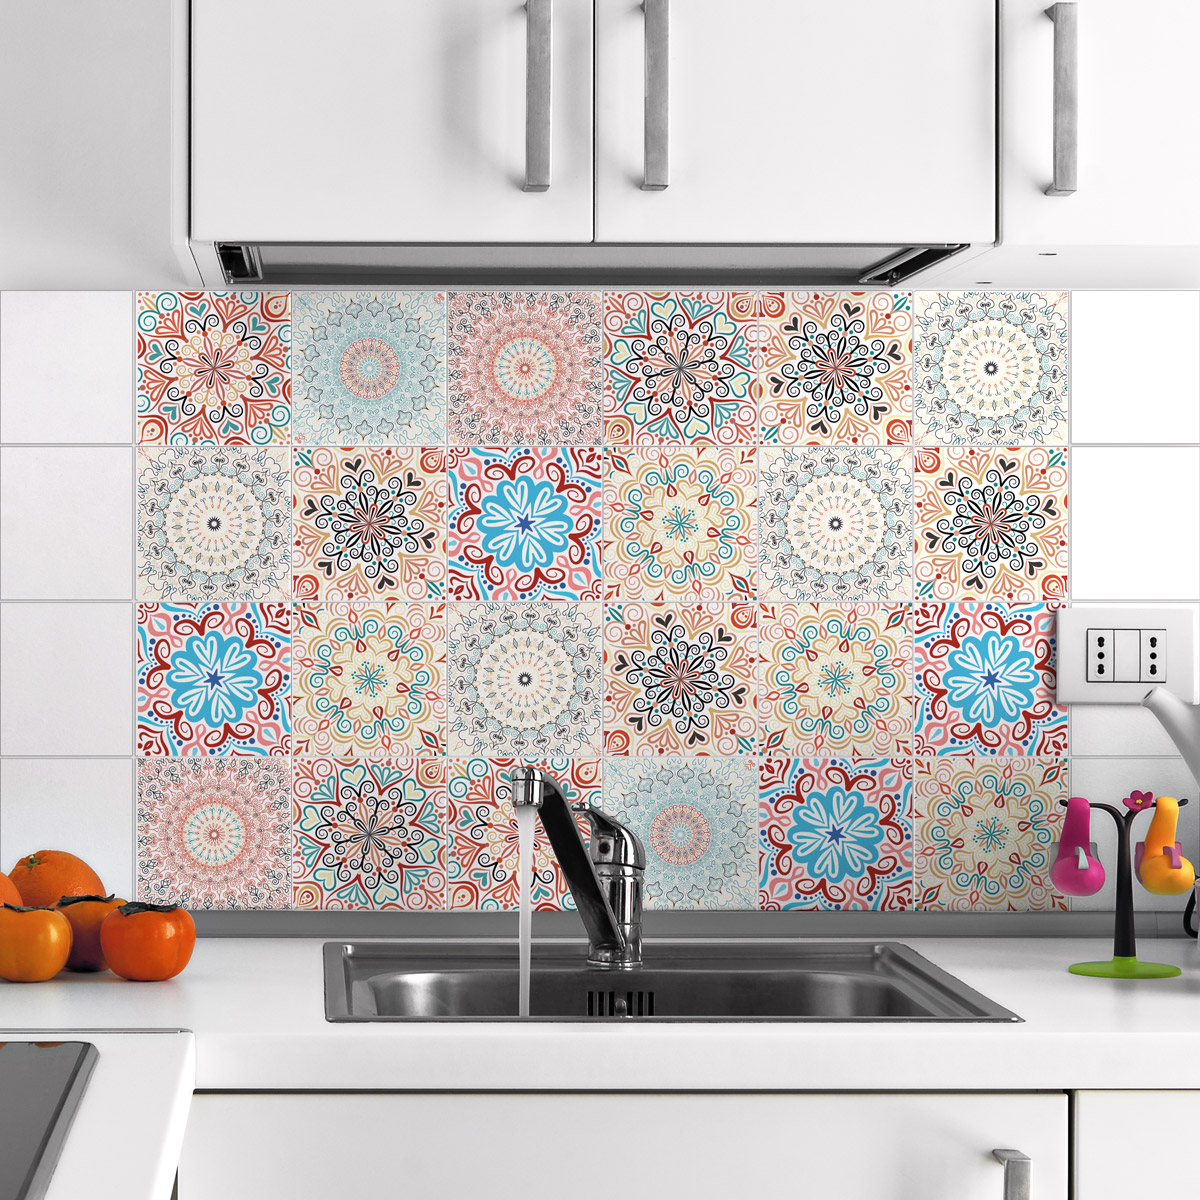 Stickers Carrelage Cuisine: 24 Stickers Carrelages Azulejos Ornements Florales